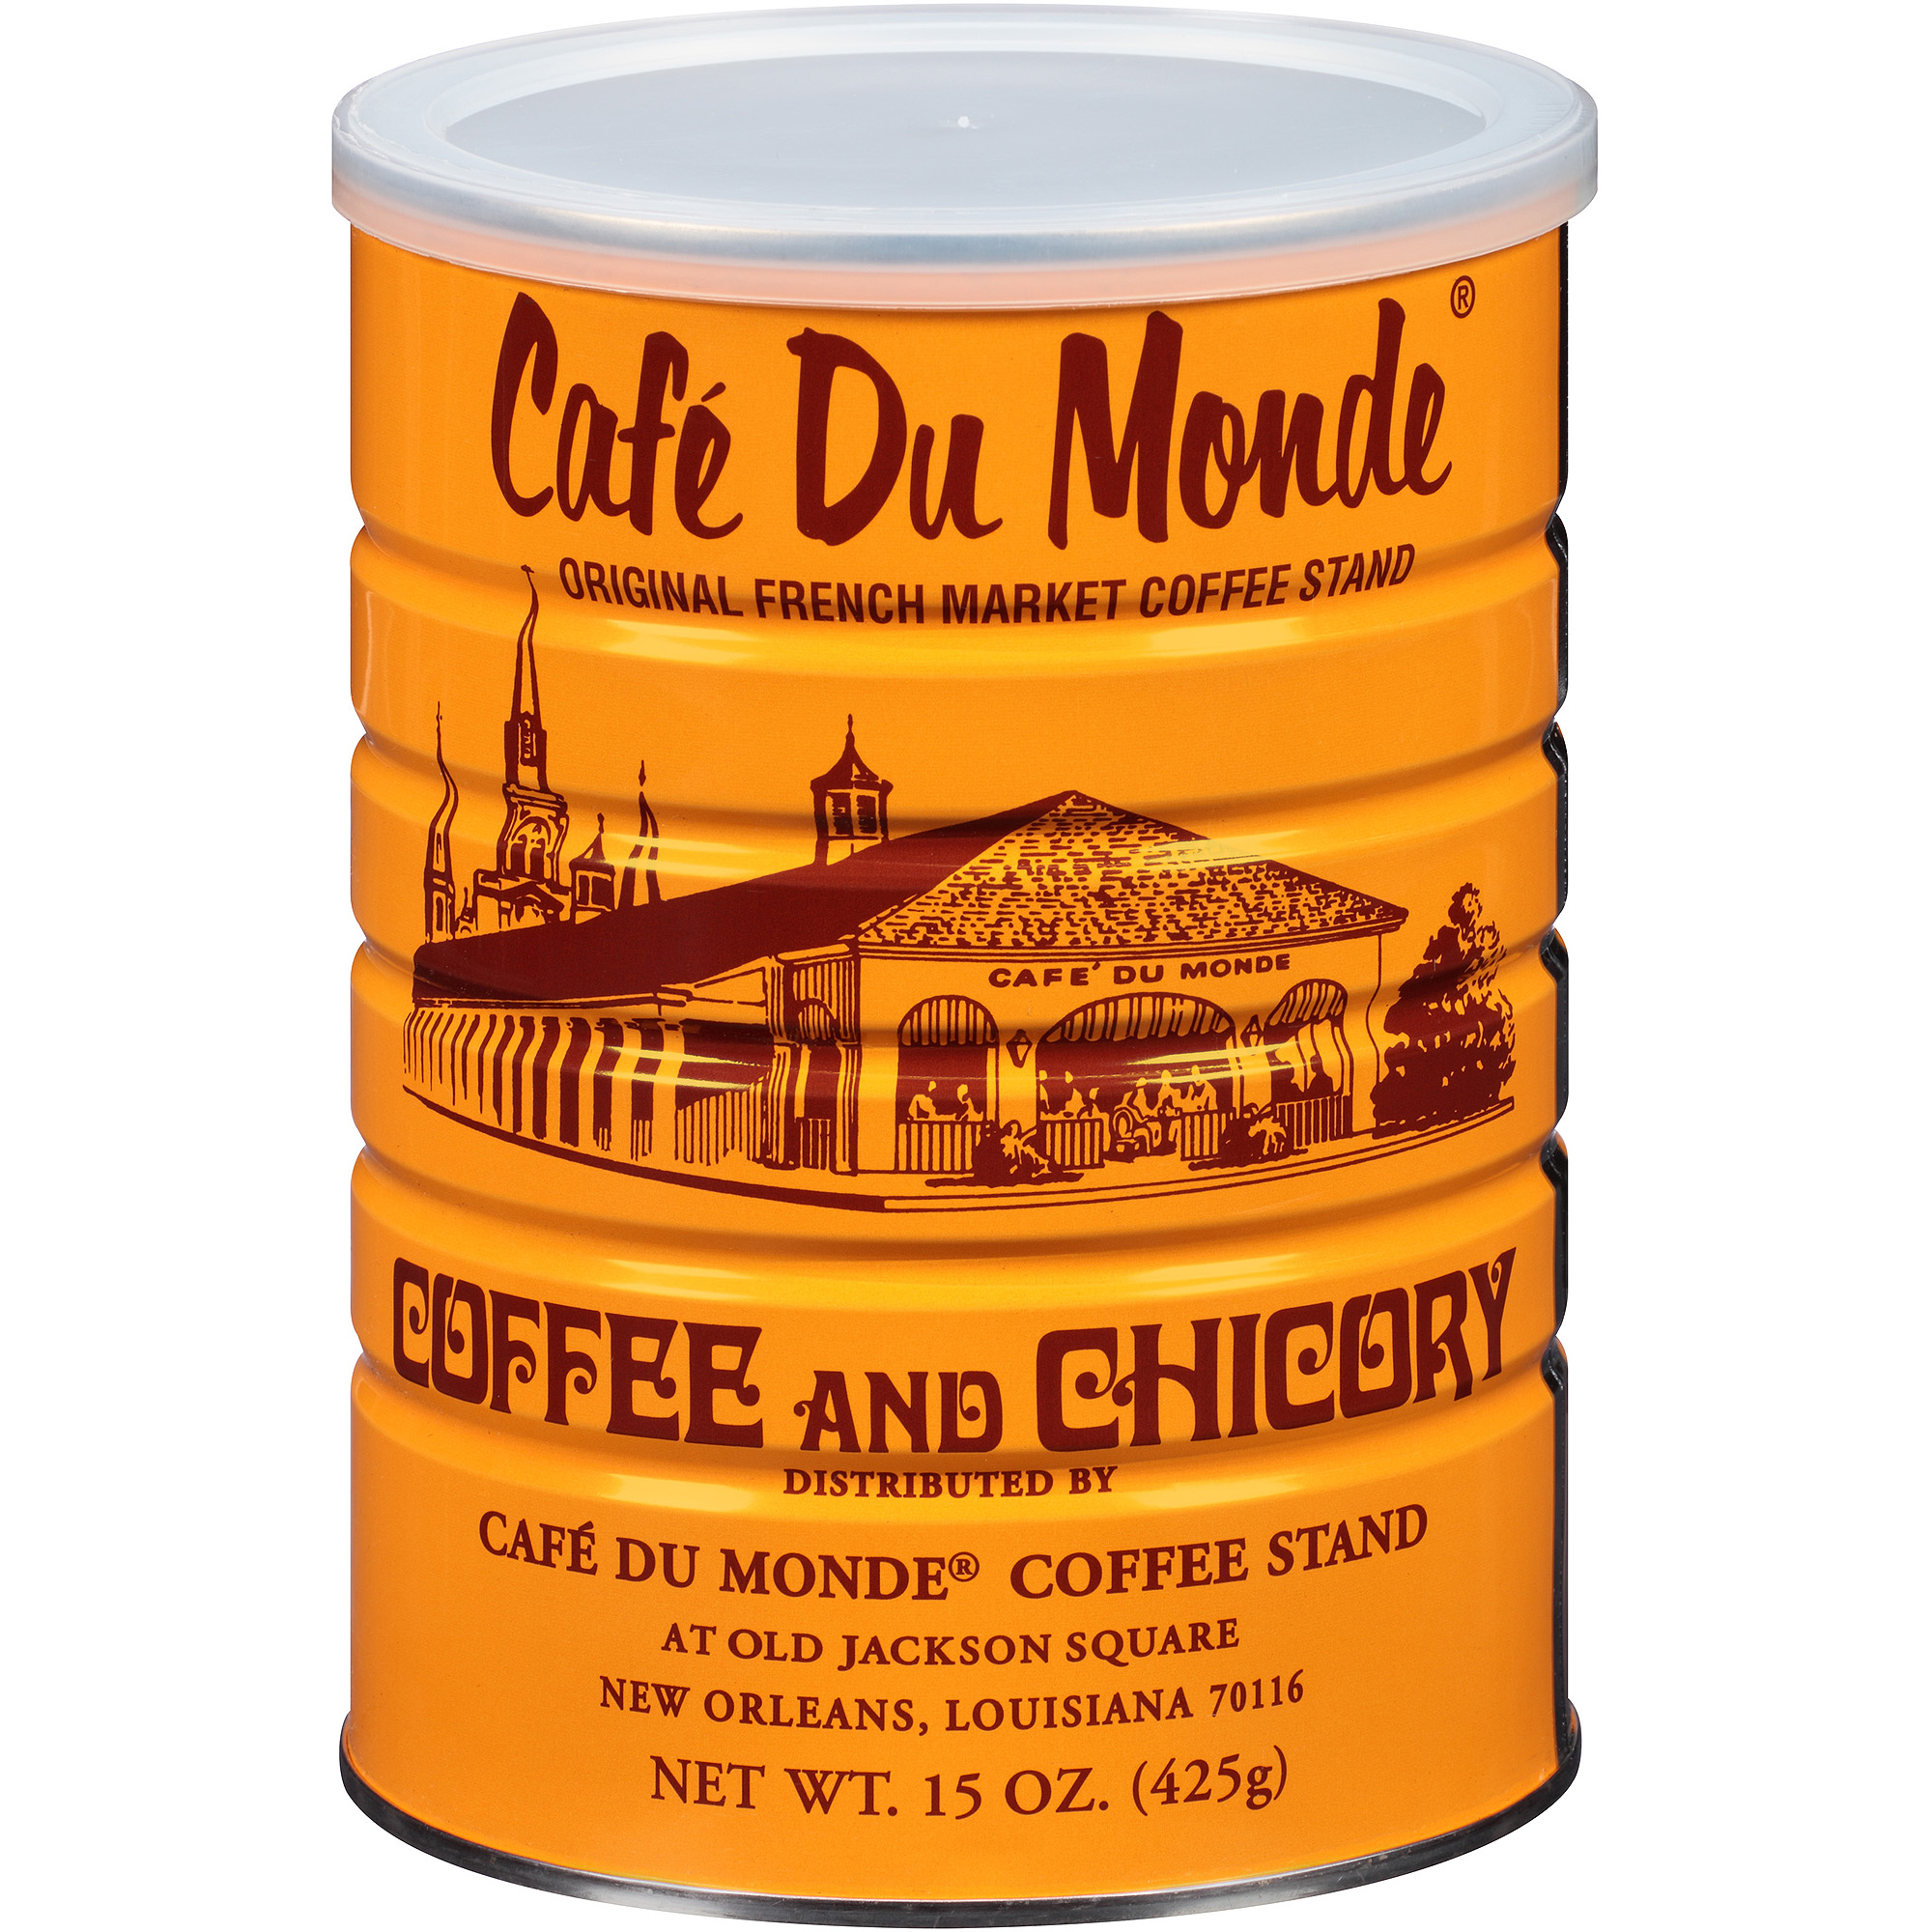 Cafe Du Monde Original French Market Coffee Stand Coffee and Chicory, 15 oz